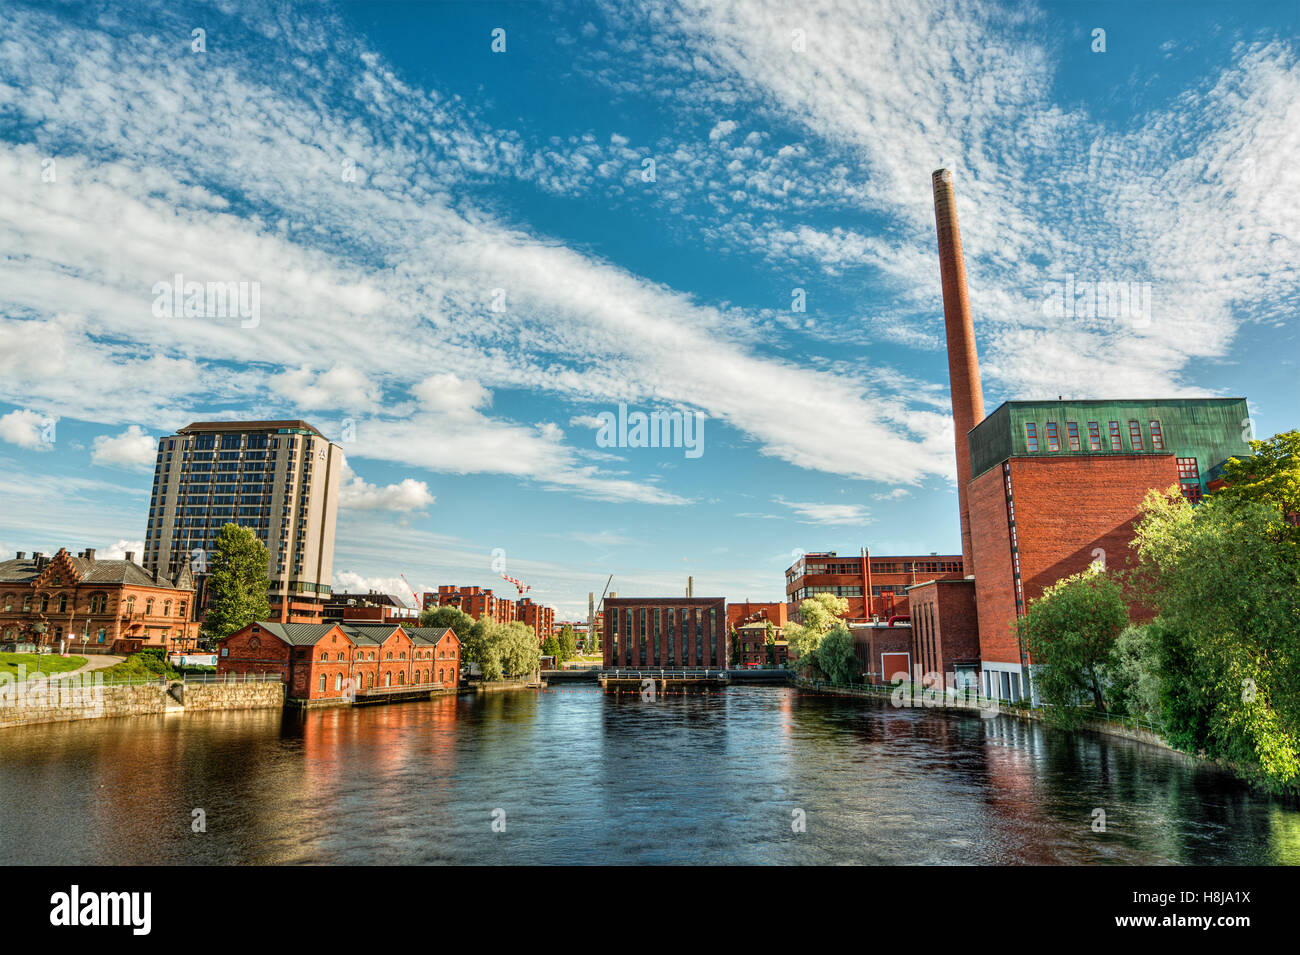 July 2016, industrial buildings in Tampere (Finland), HDR-technique - Stock Image